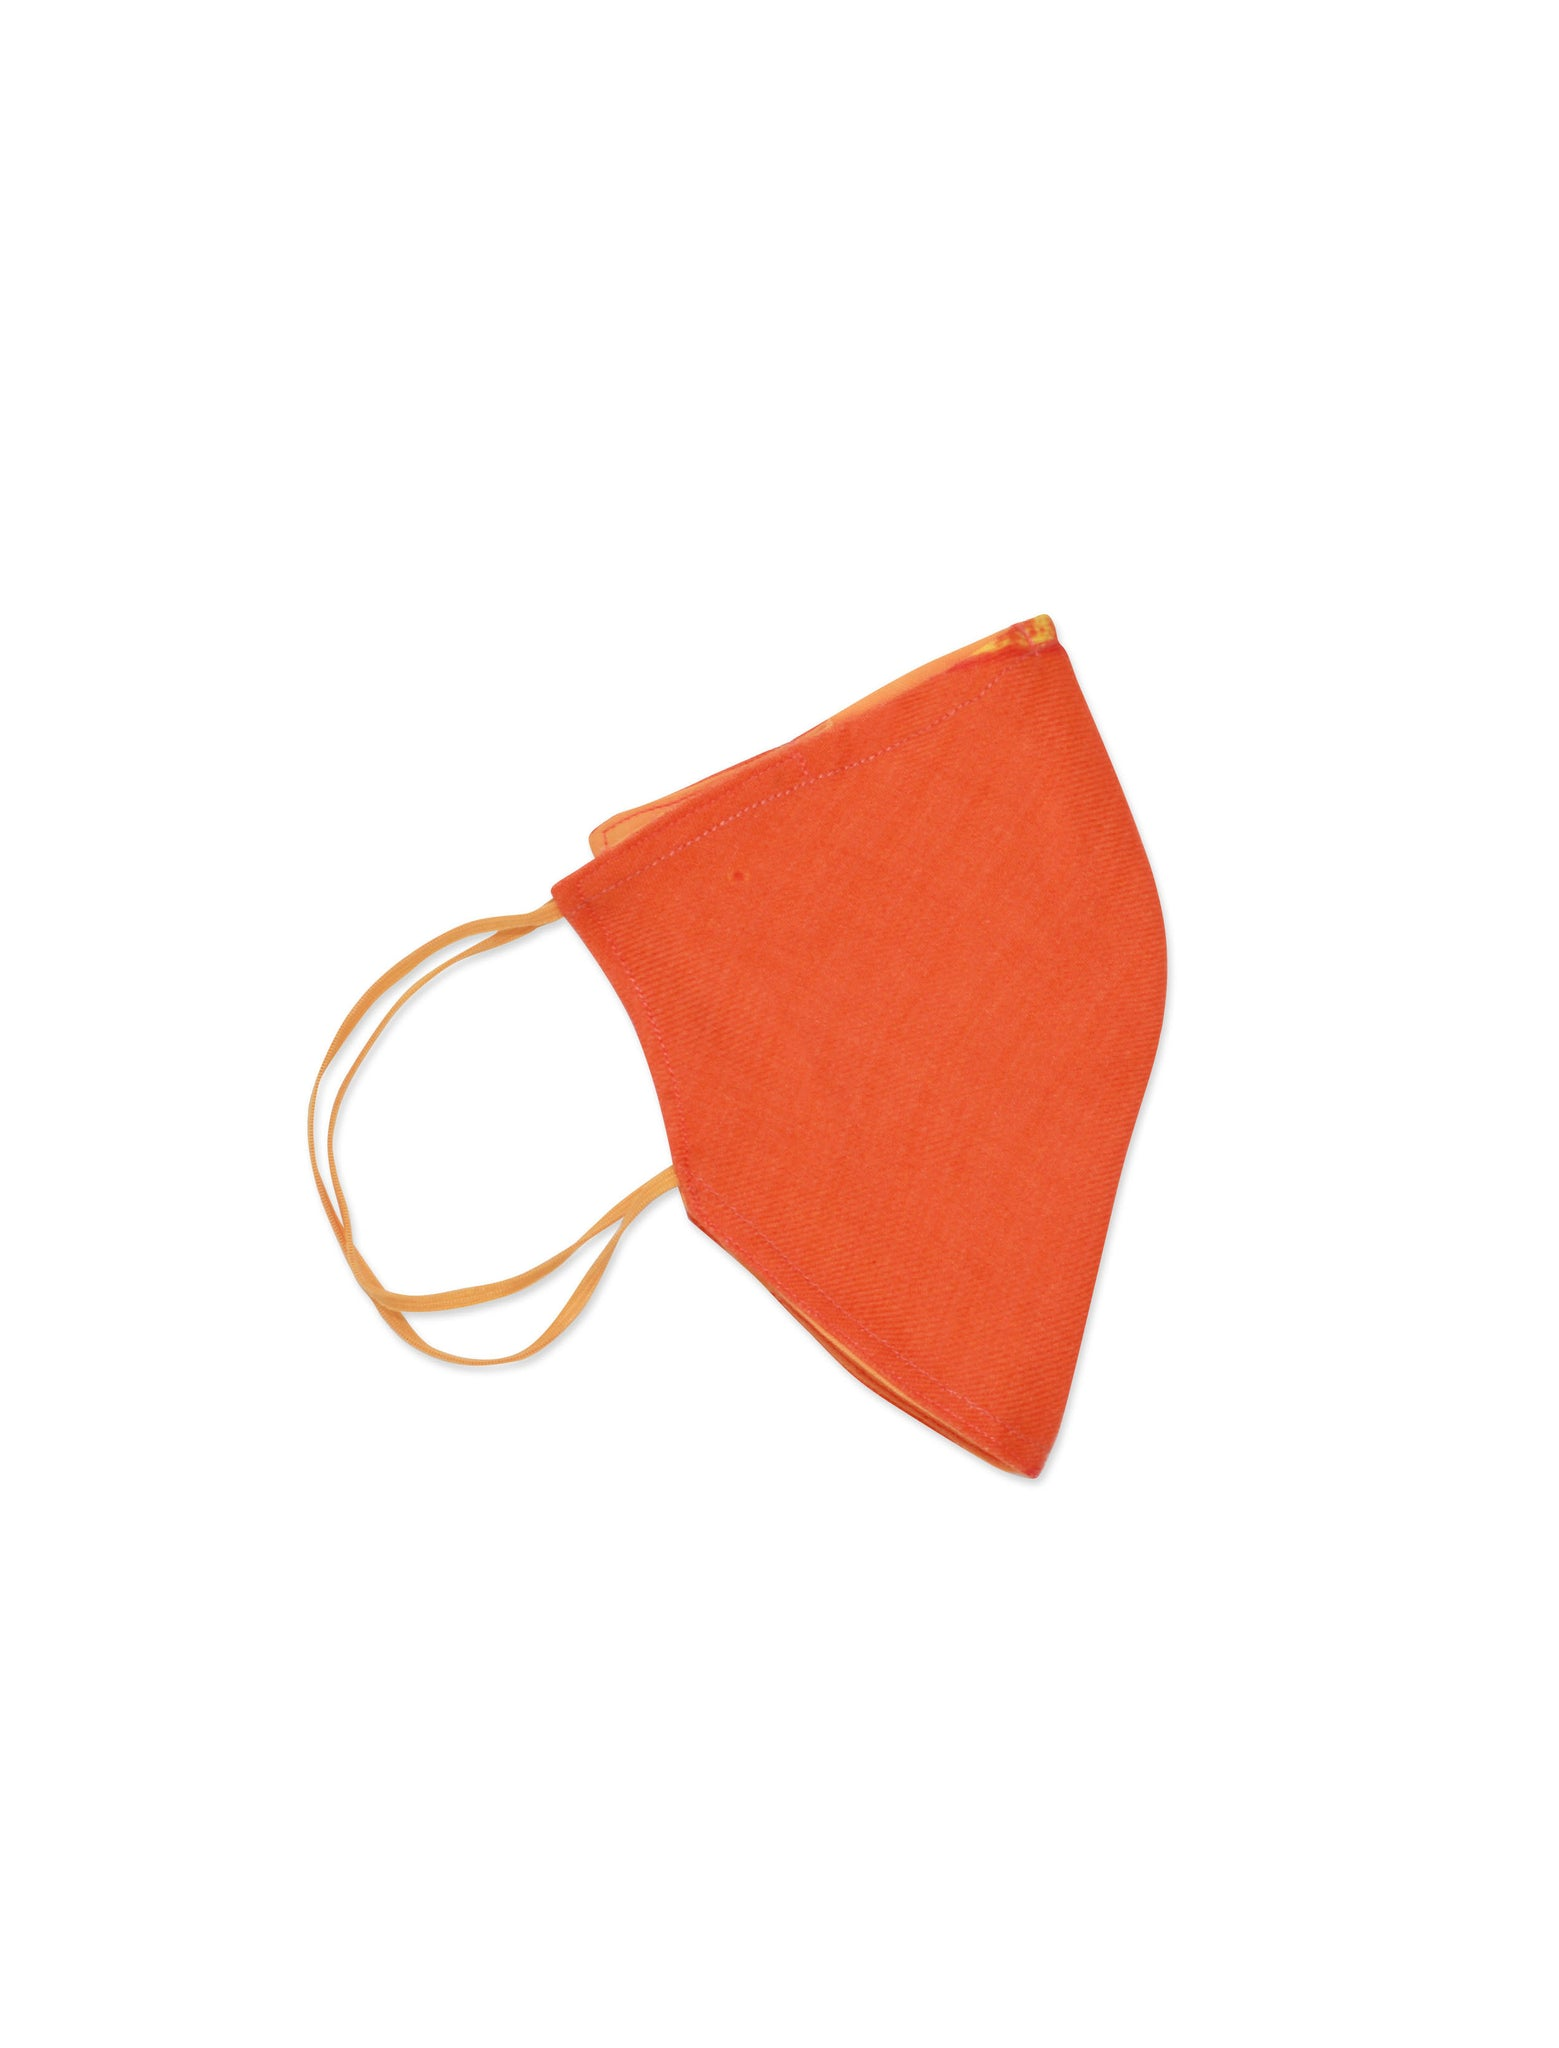 Orange offcut mask + 'Marine Science is Beautiful' organic cotton string bag